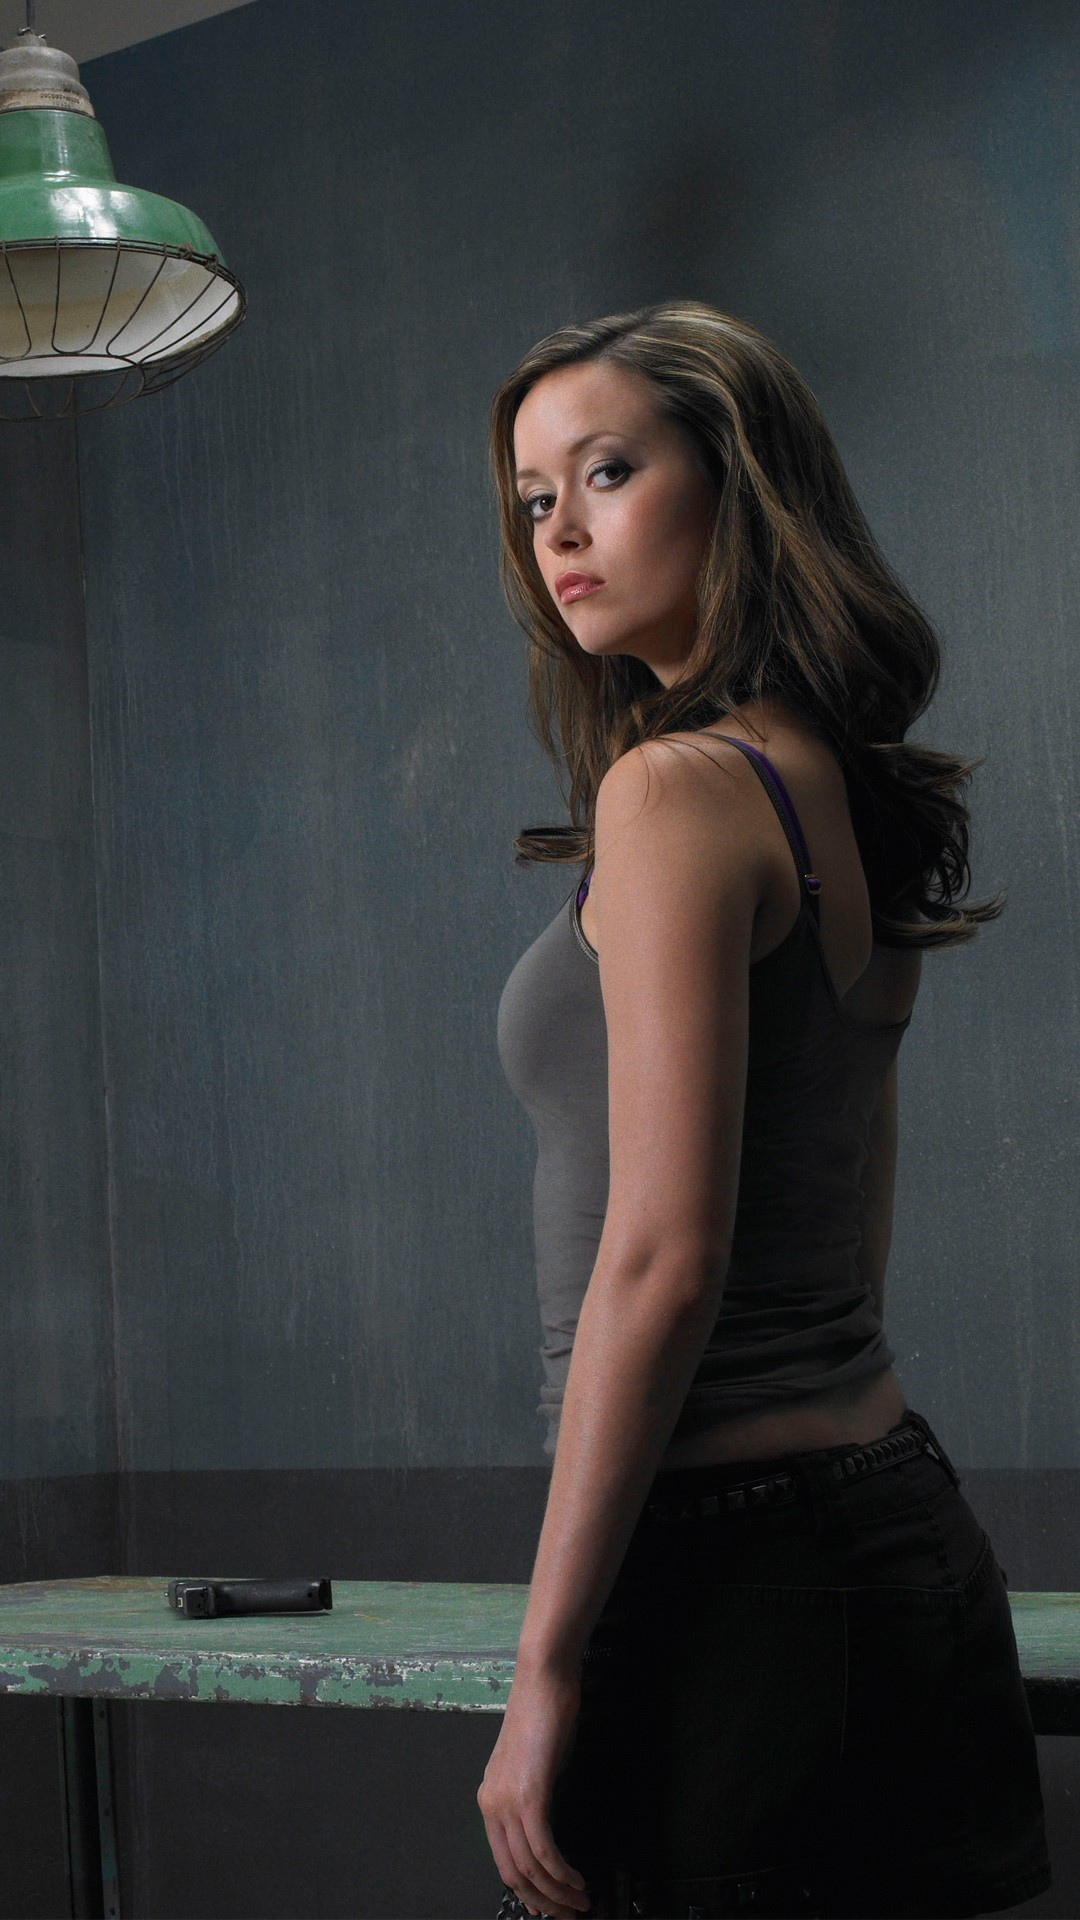 Free Terminator The Sarah Connor Chronicles Summer Glau phone wallpaper by tammy3